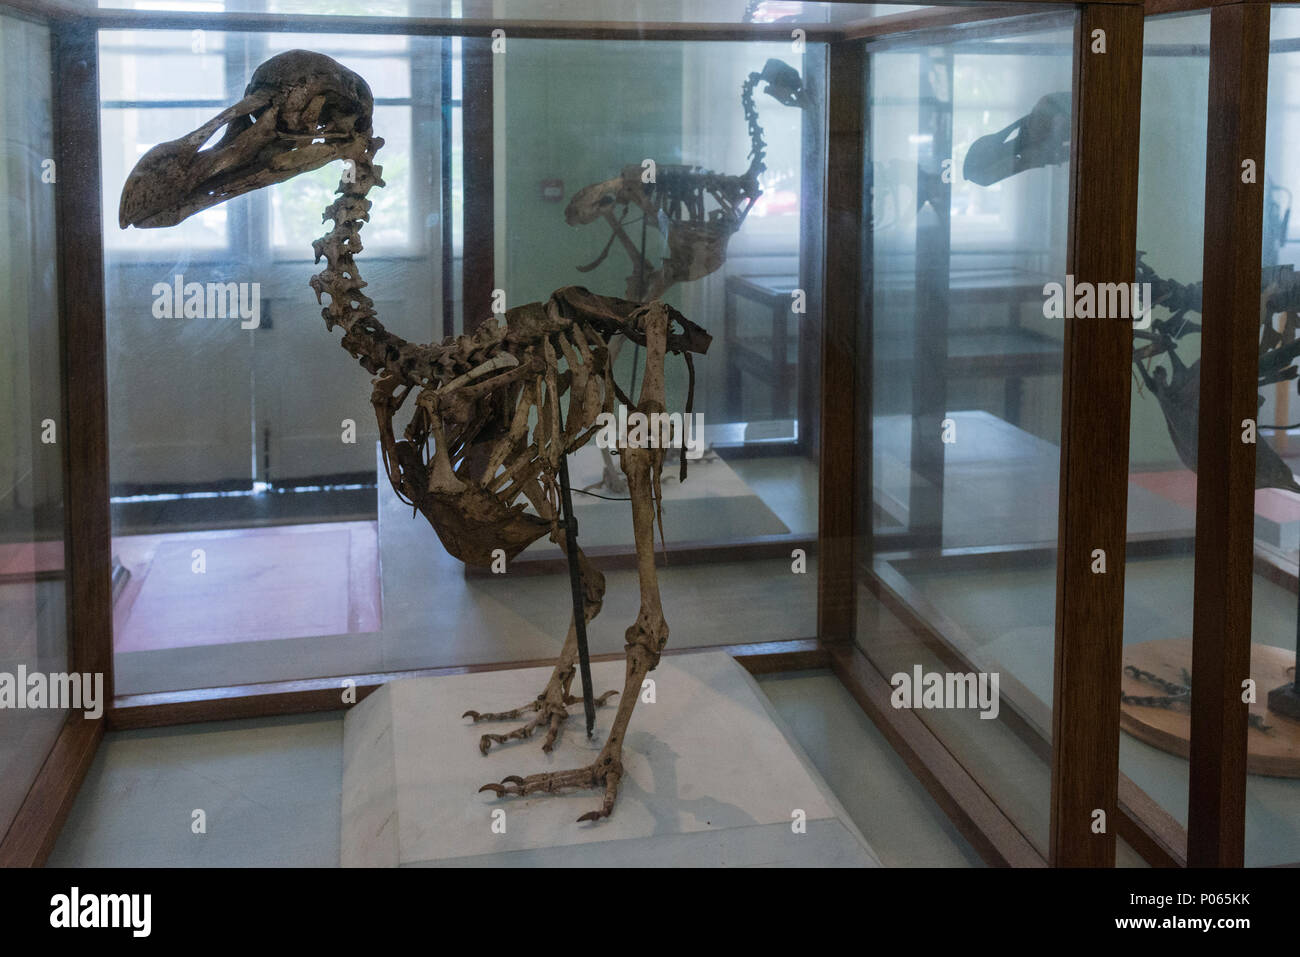 Skeletons of dodos, extinct flightless birds, in the Natural History Museum, Port Louis, Mauritius - Stock Image